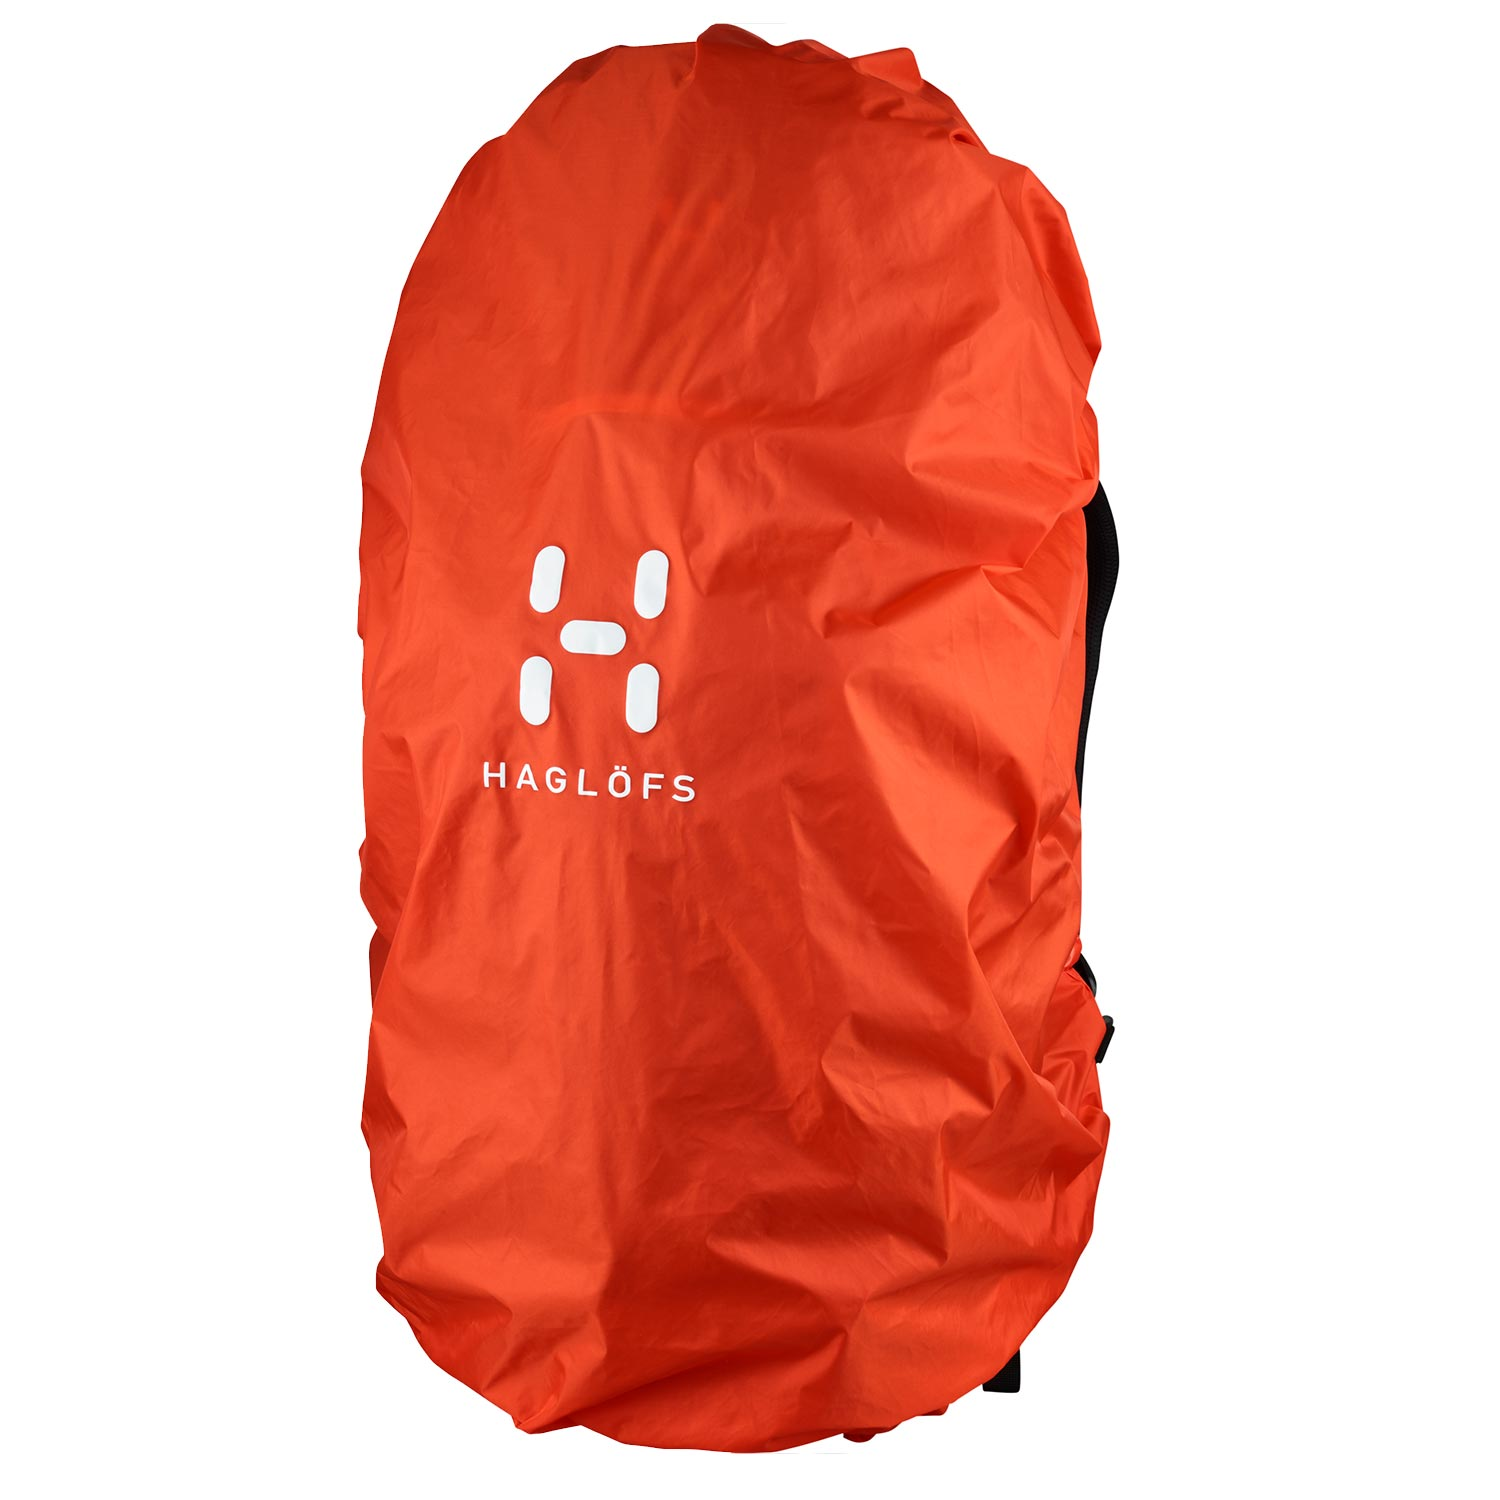 Haglofs Medium Raincover - Orange